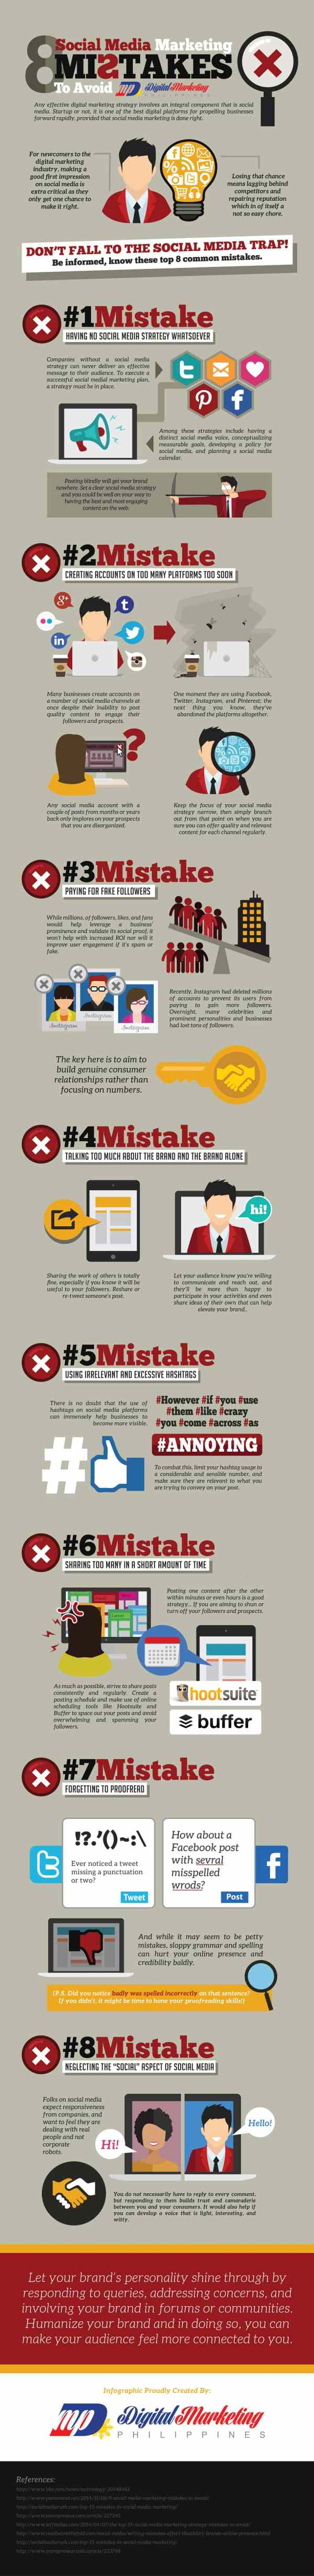 Is Your Business Making Any of These 10 Social Media Mistakes? Social Media Marketing  8-Social-Media-Marketing-Mistakes-to-Avoid